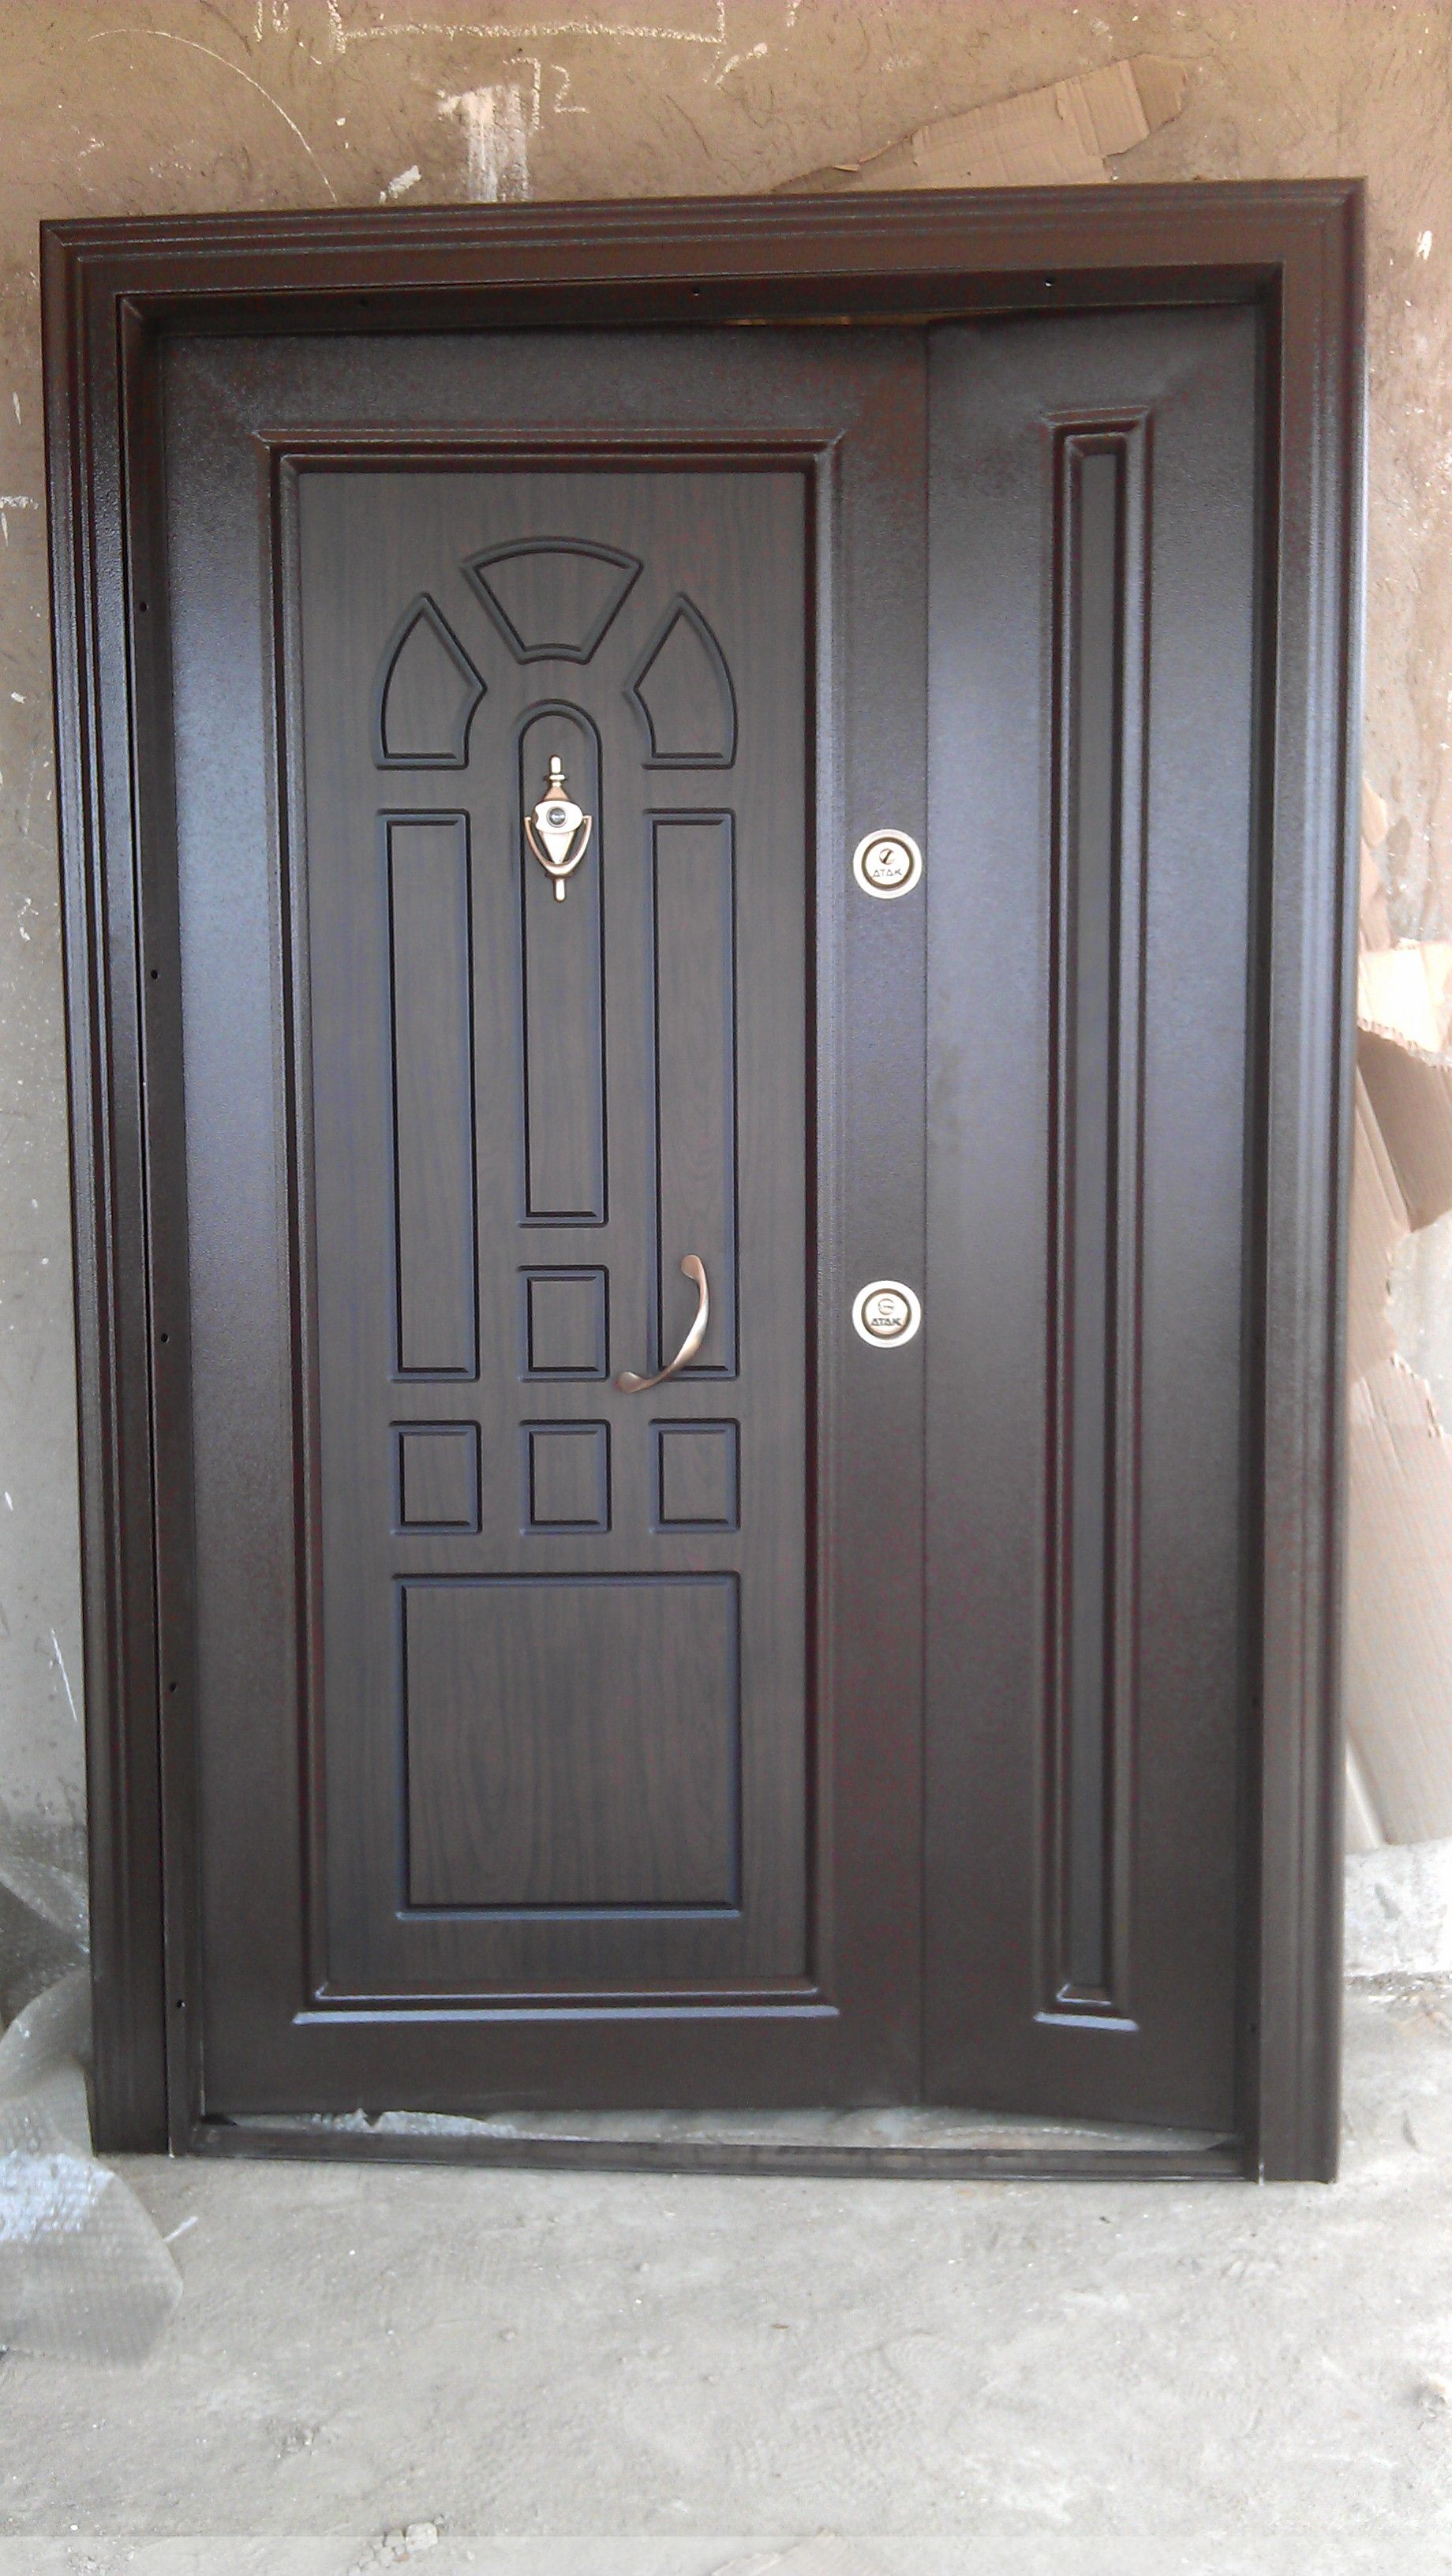 Afrotino company limited - security doors With GhanaTrader ...